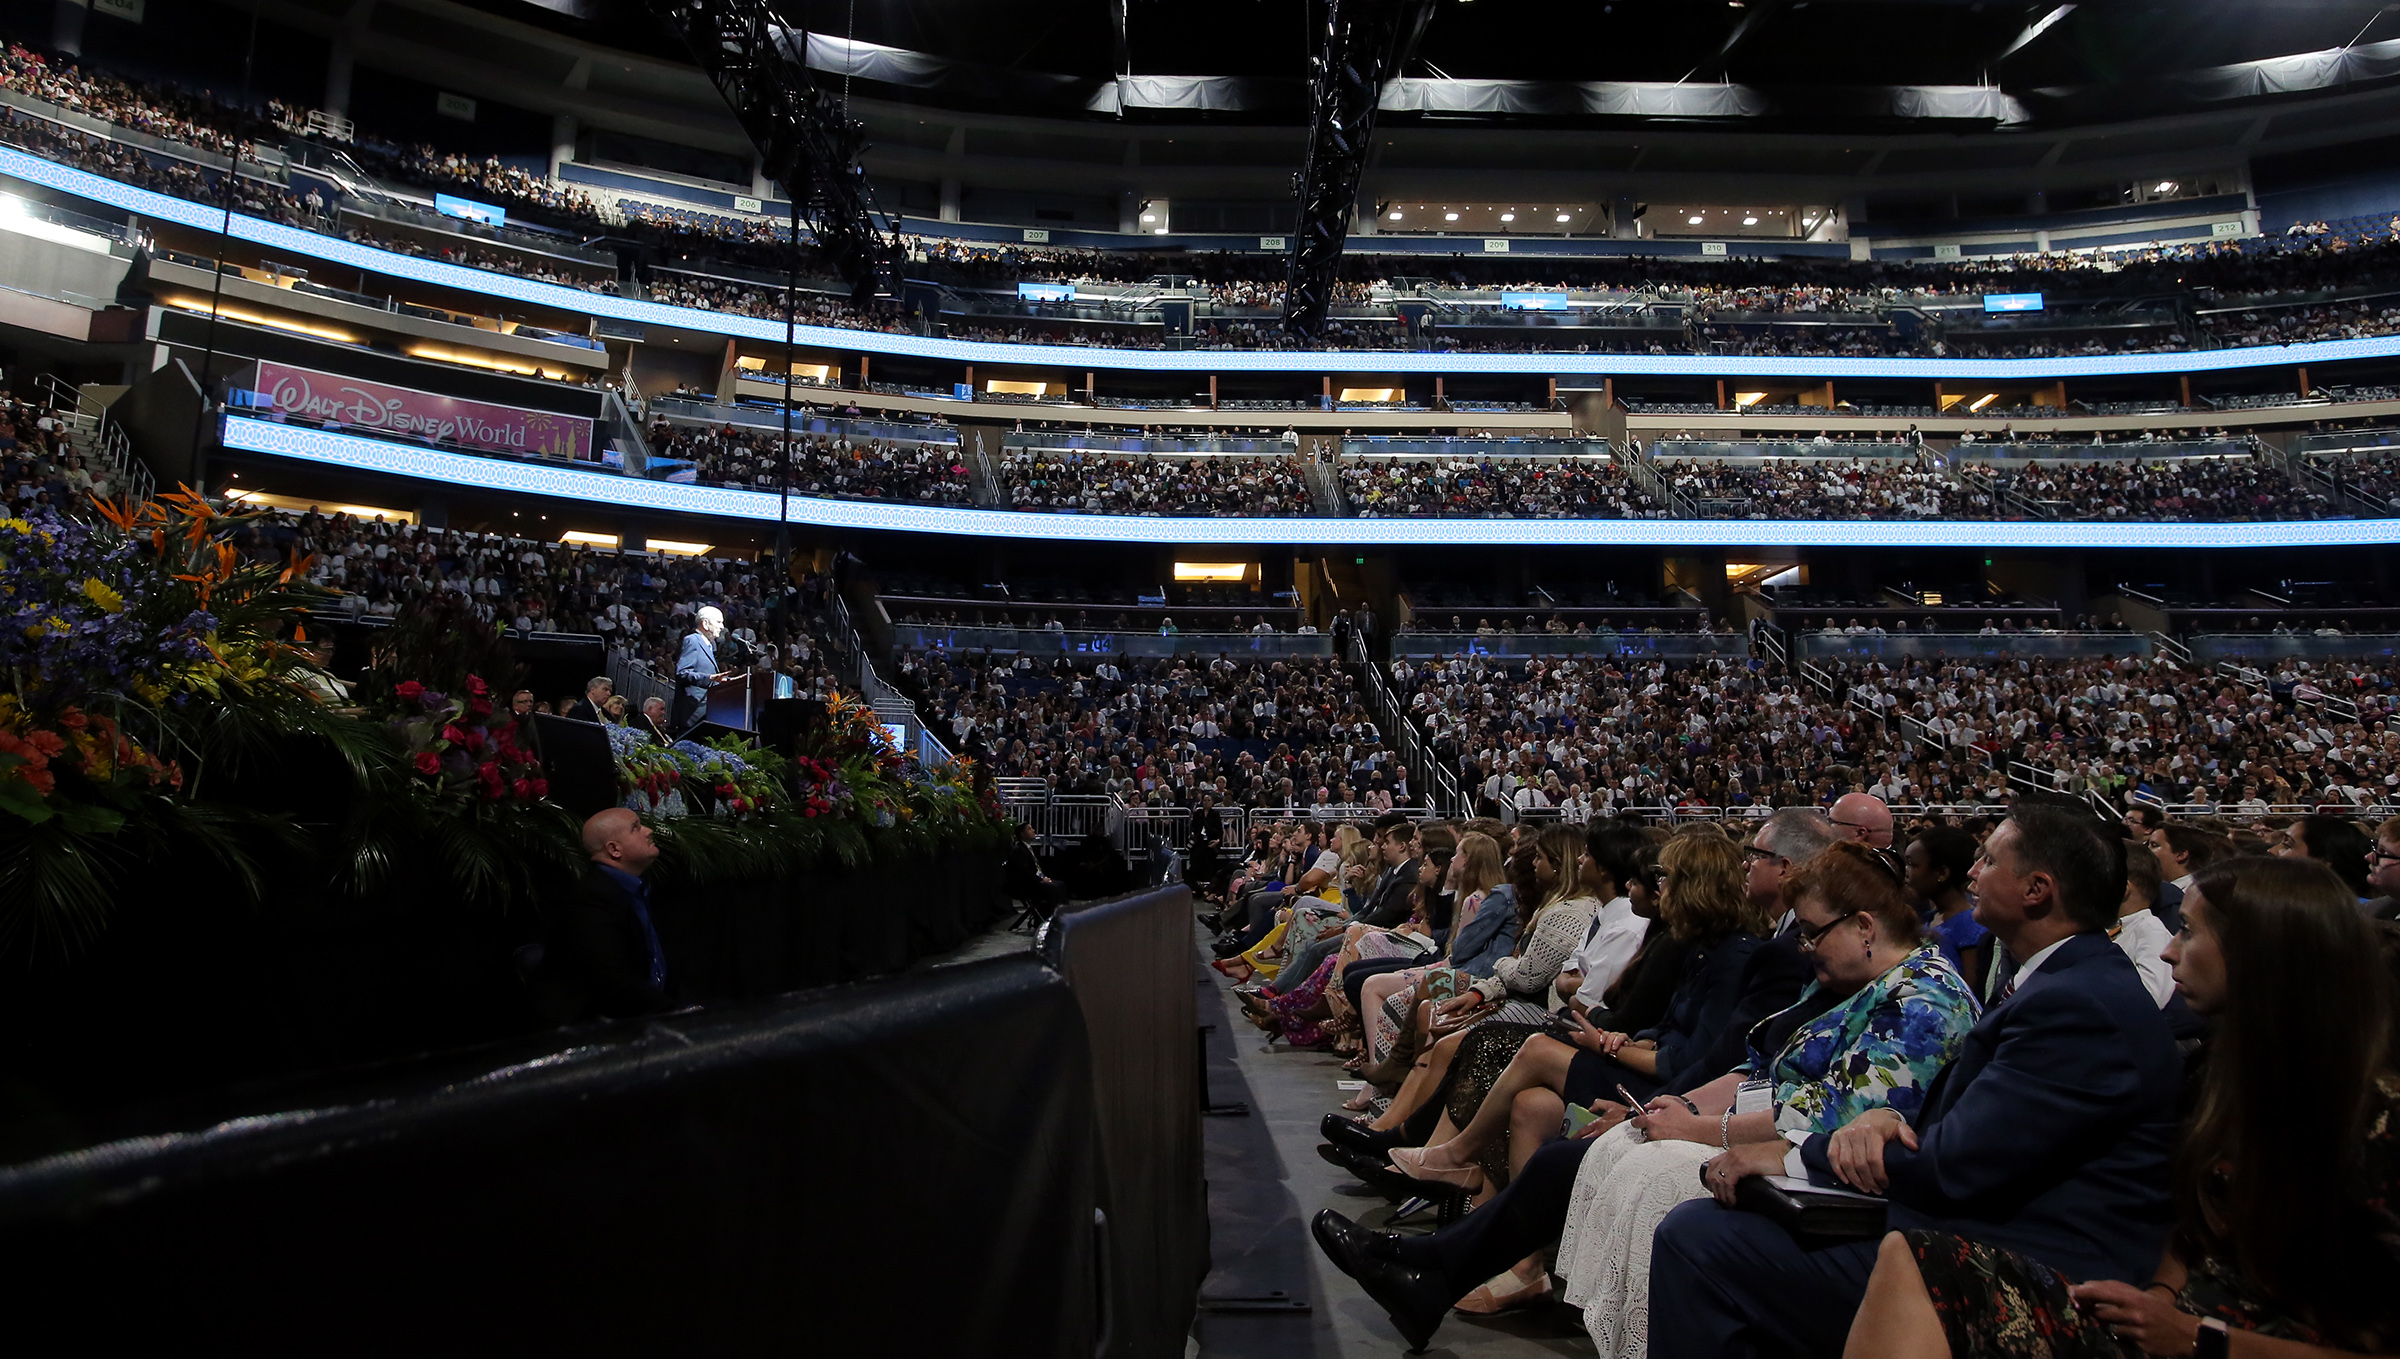 A devotional crowd of 15,500 listen to President Russell M. Nelson and others speak at the Amway Center in Orlando, Florida, on Sunday, June 9, 2019.